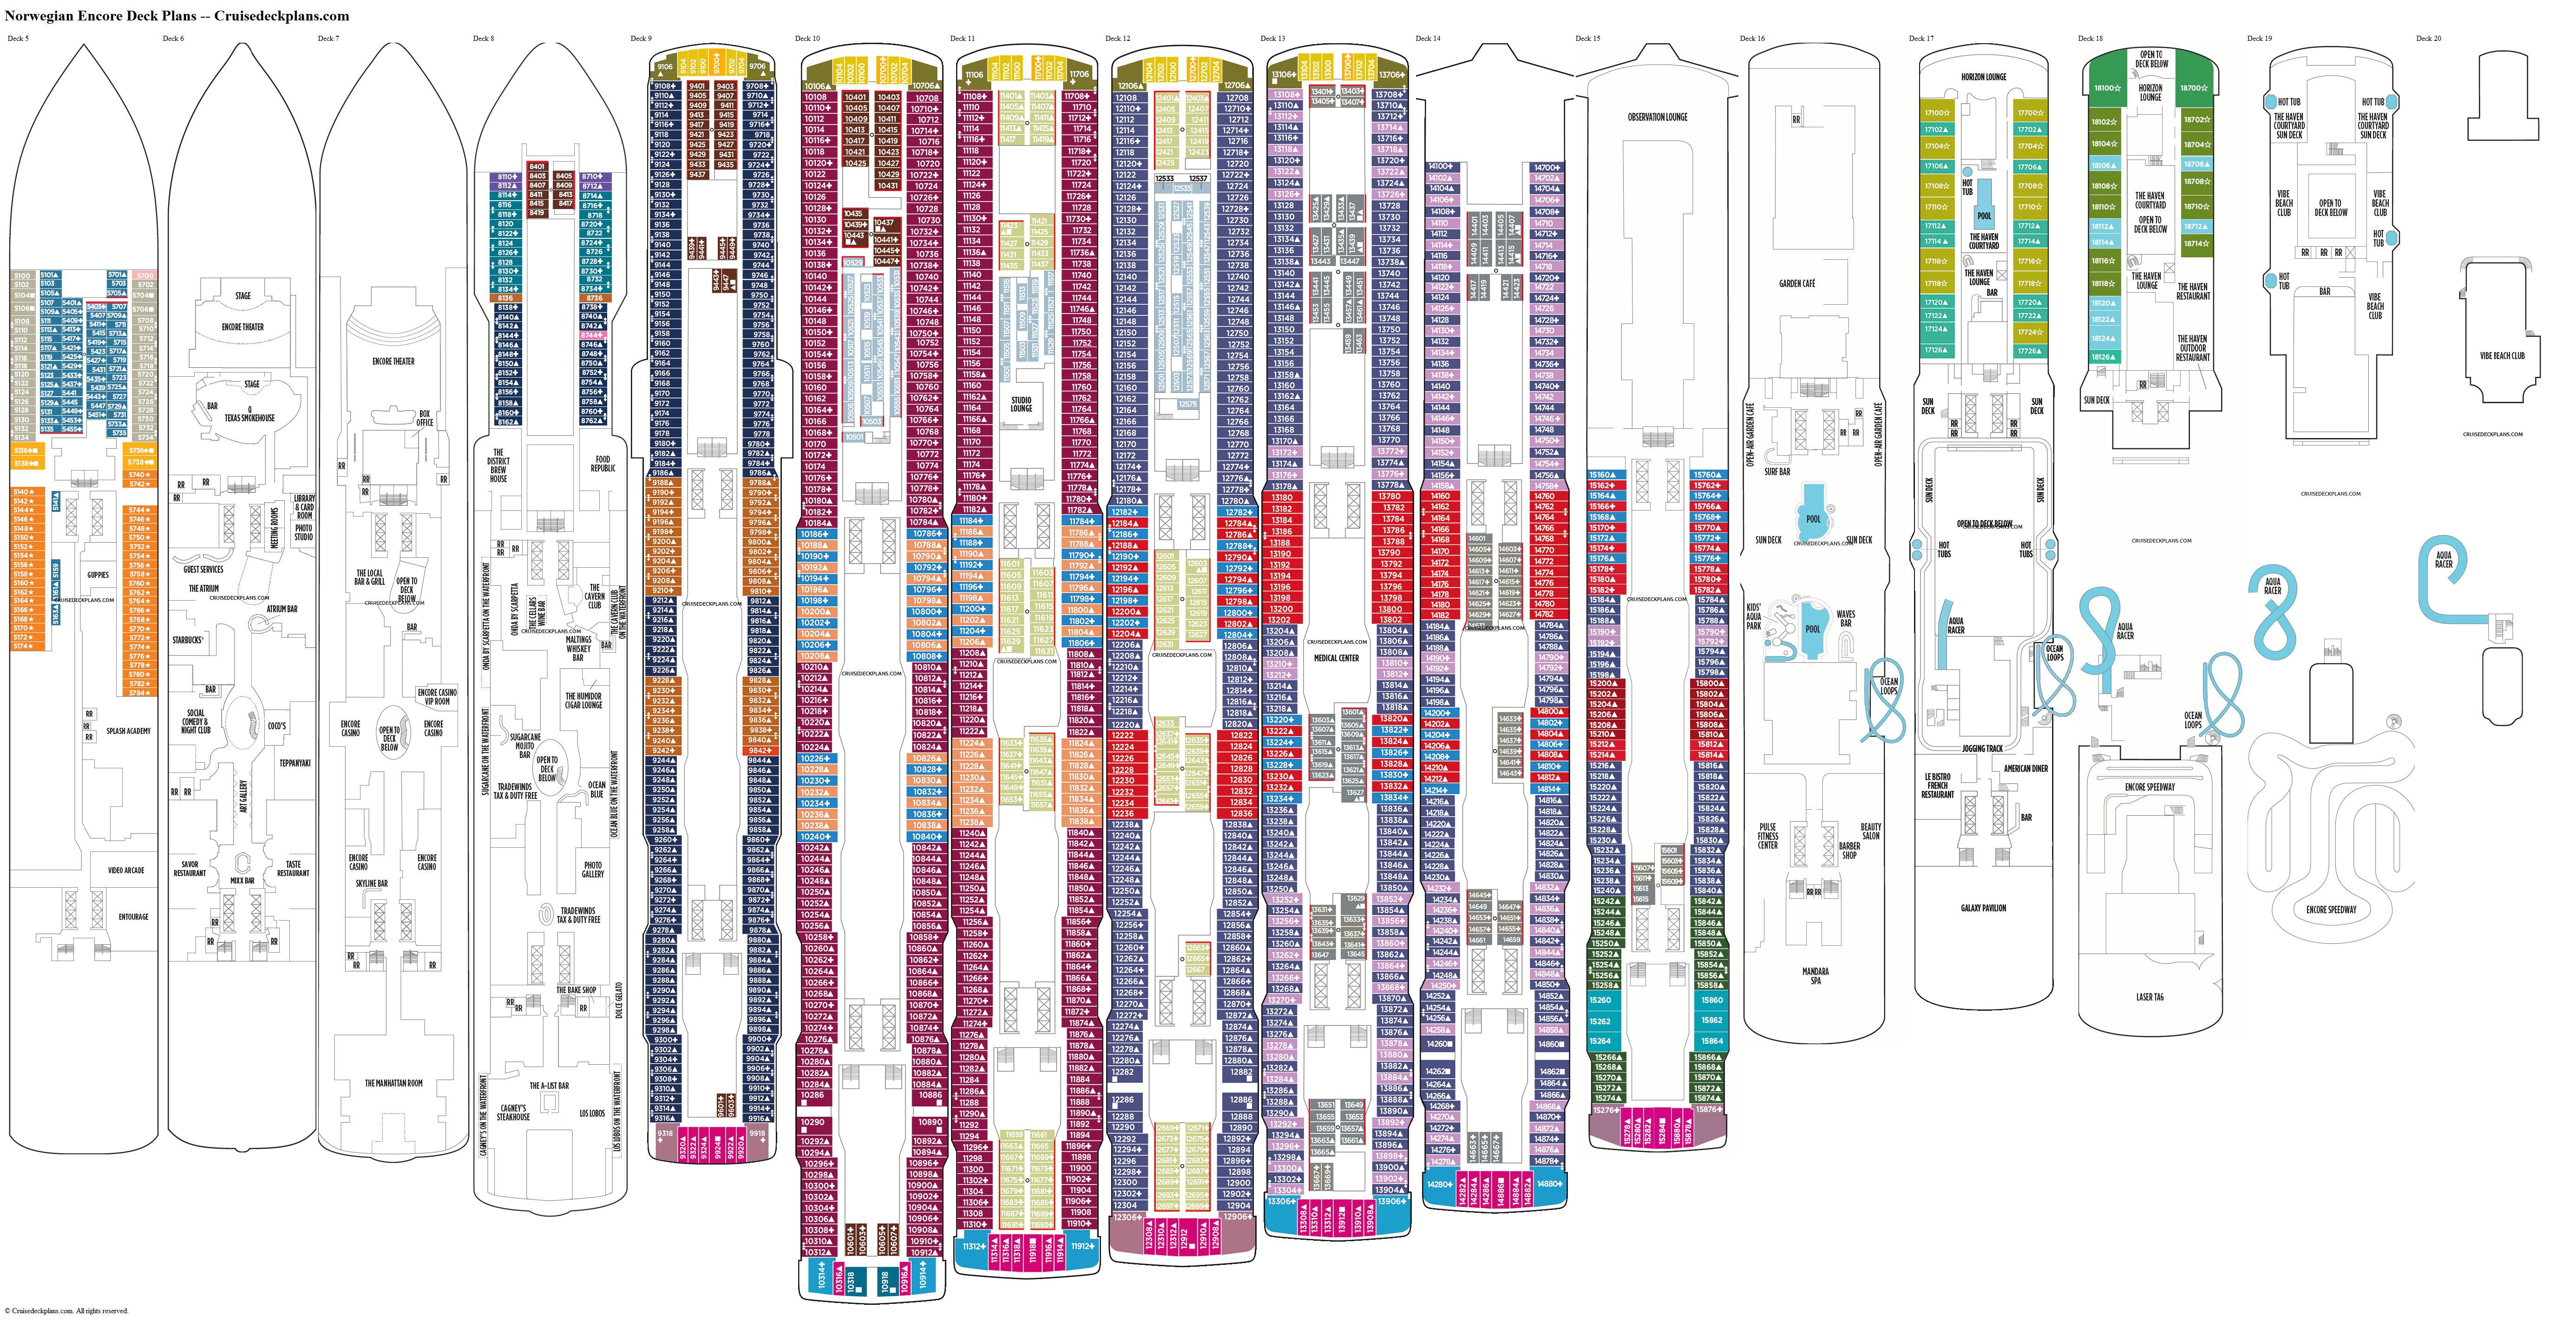 Norwegian Encore deck plans image